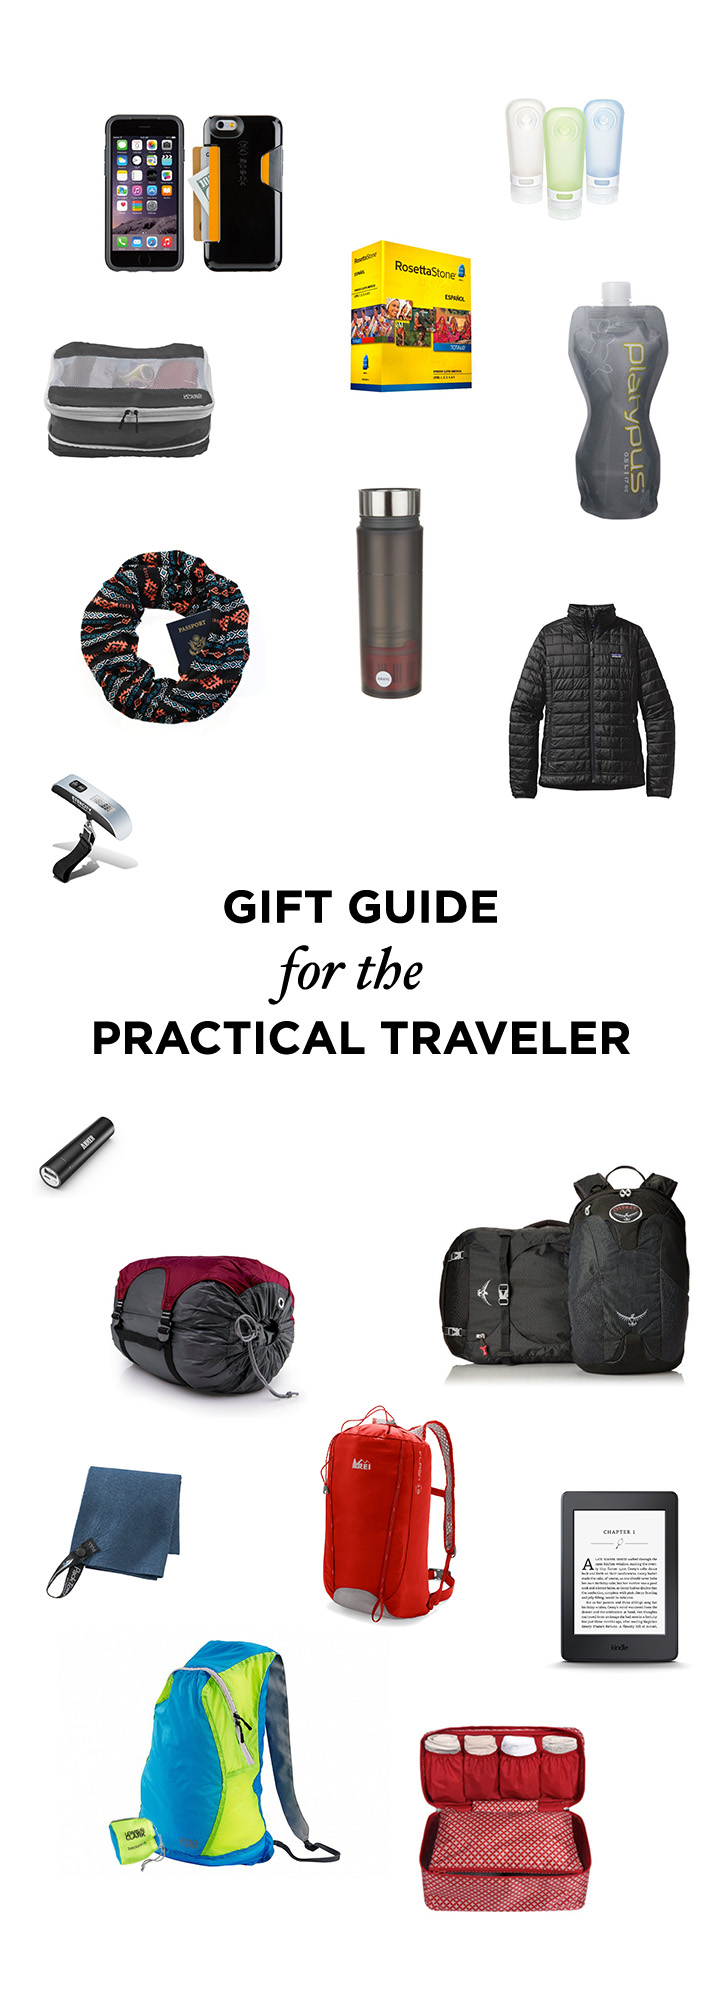 Travel Gift Guide for the Practical Traveler